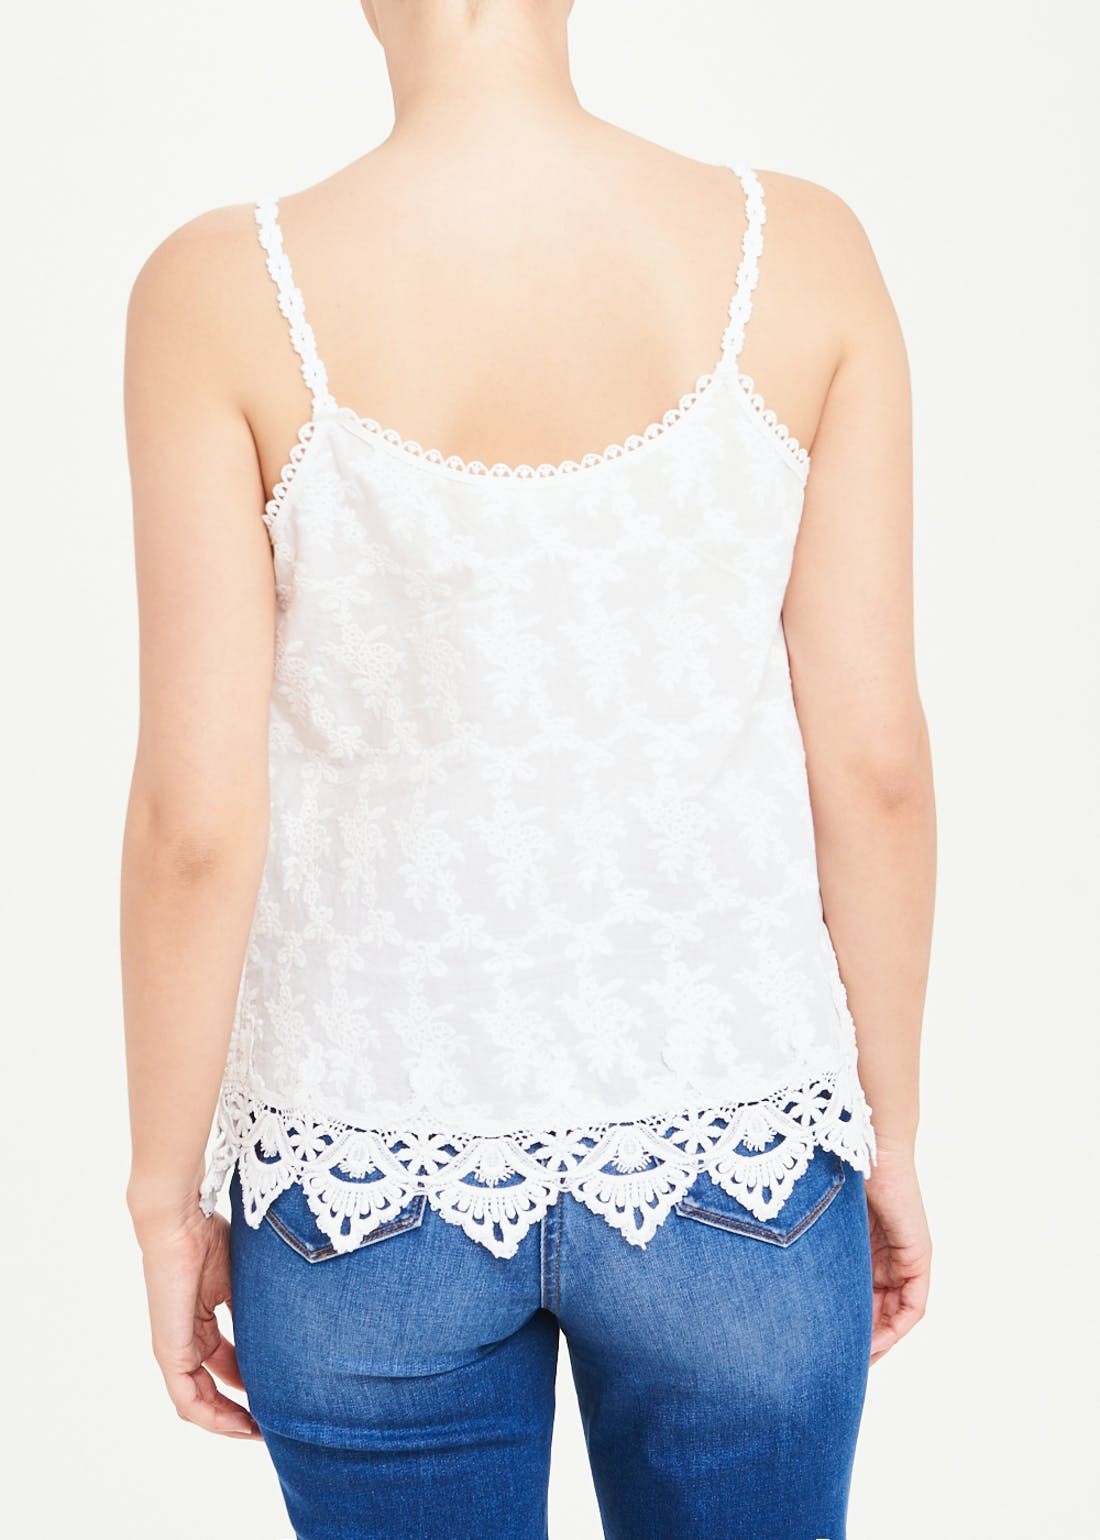 Falmer Embroidered Lace Trim Cami Top